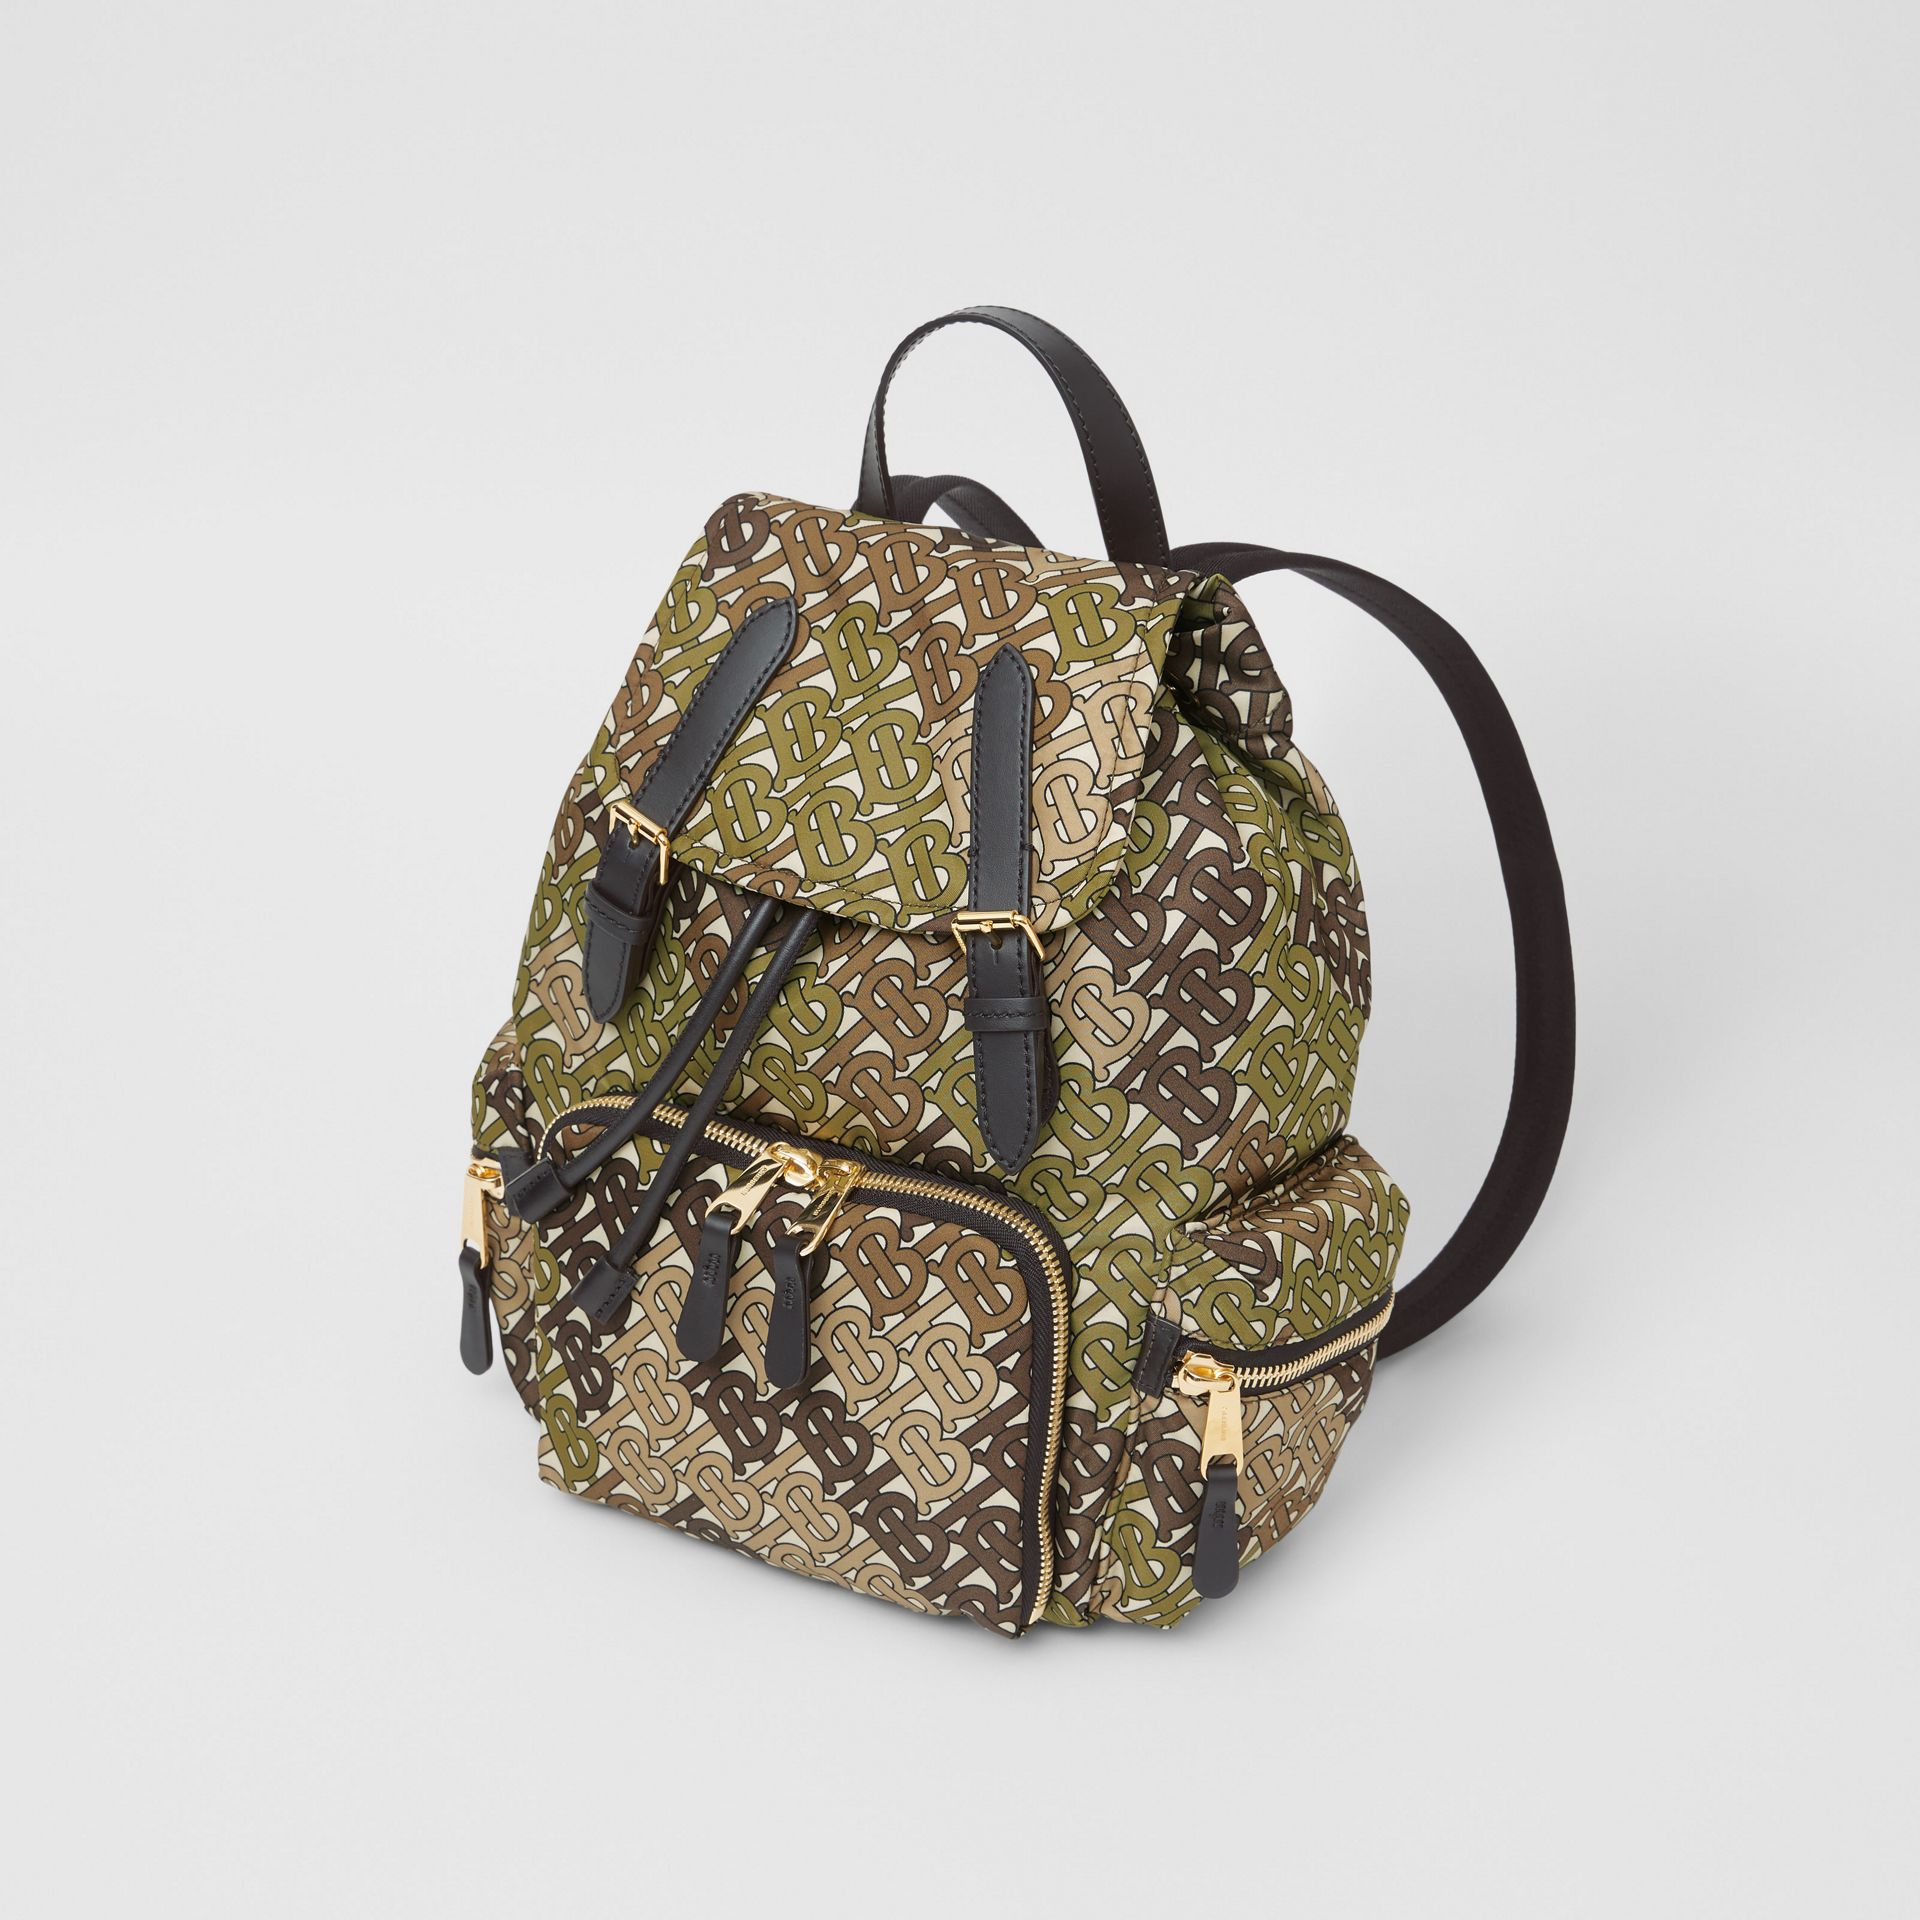 Sac The Rucksack moyen en nylon Monogram (Vert Kaki) - Femme | Burberry - photo de la galerie 3